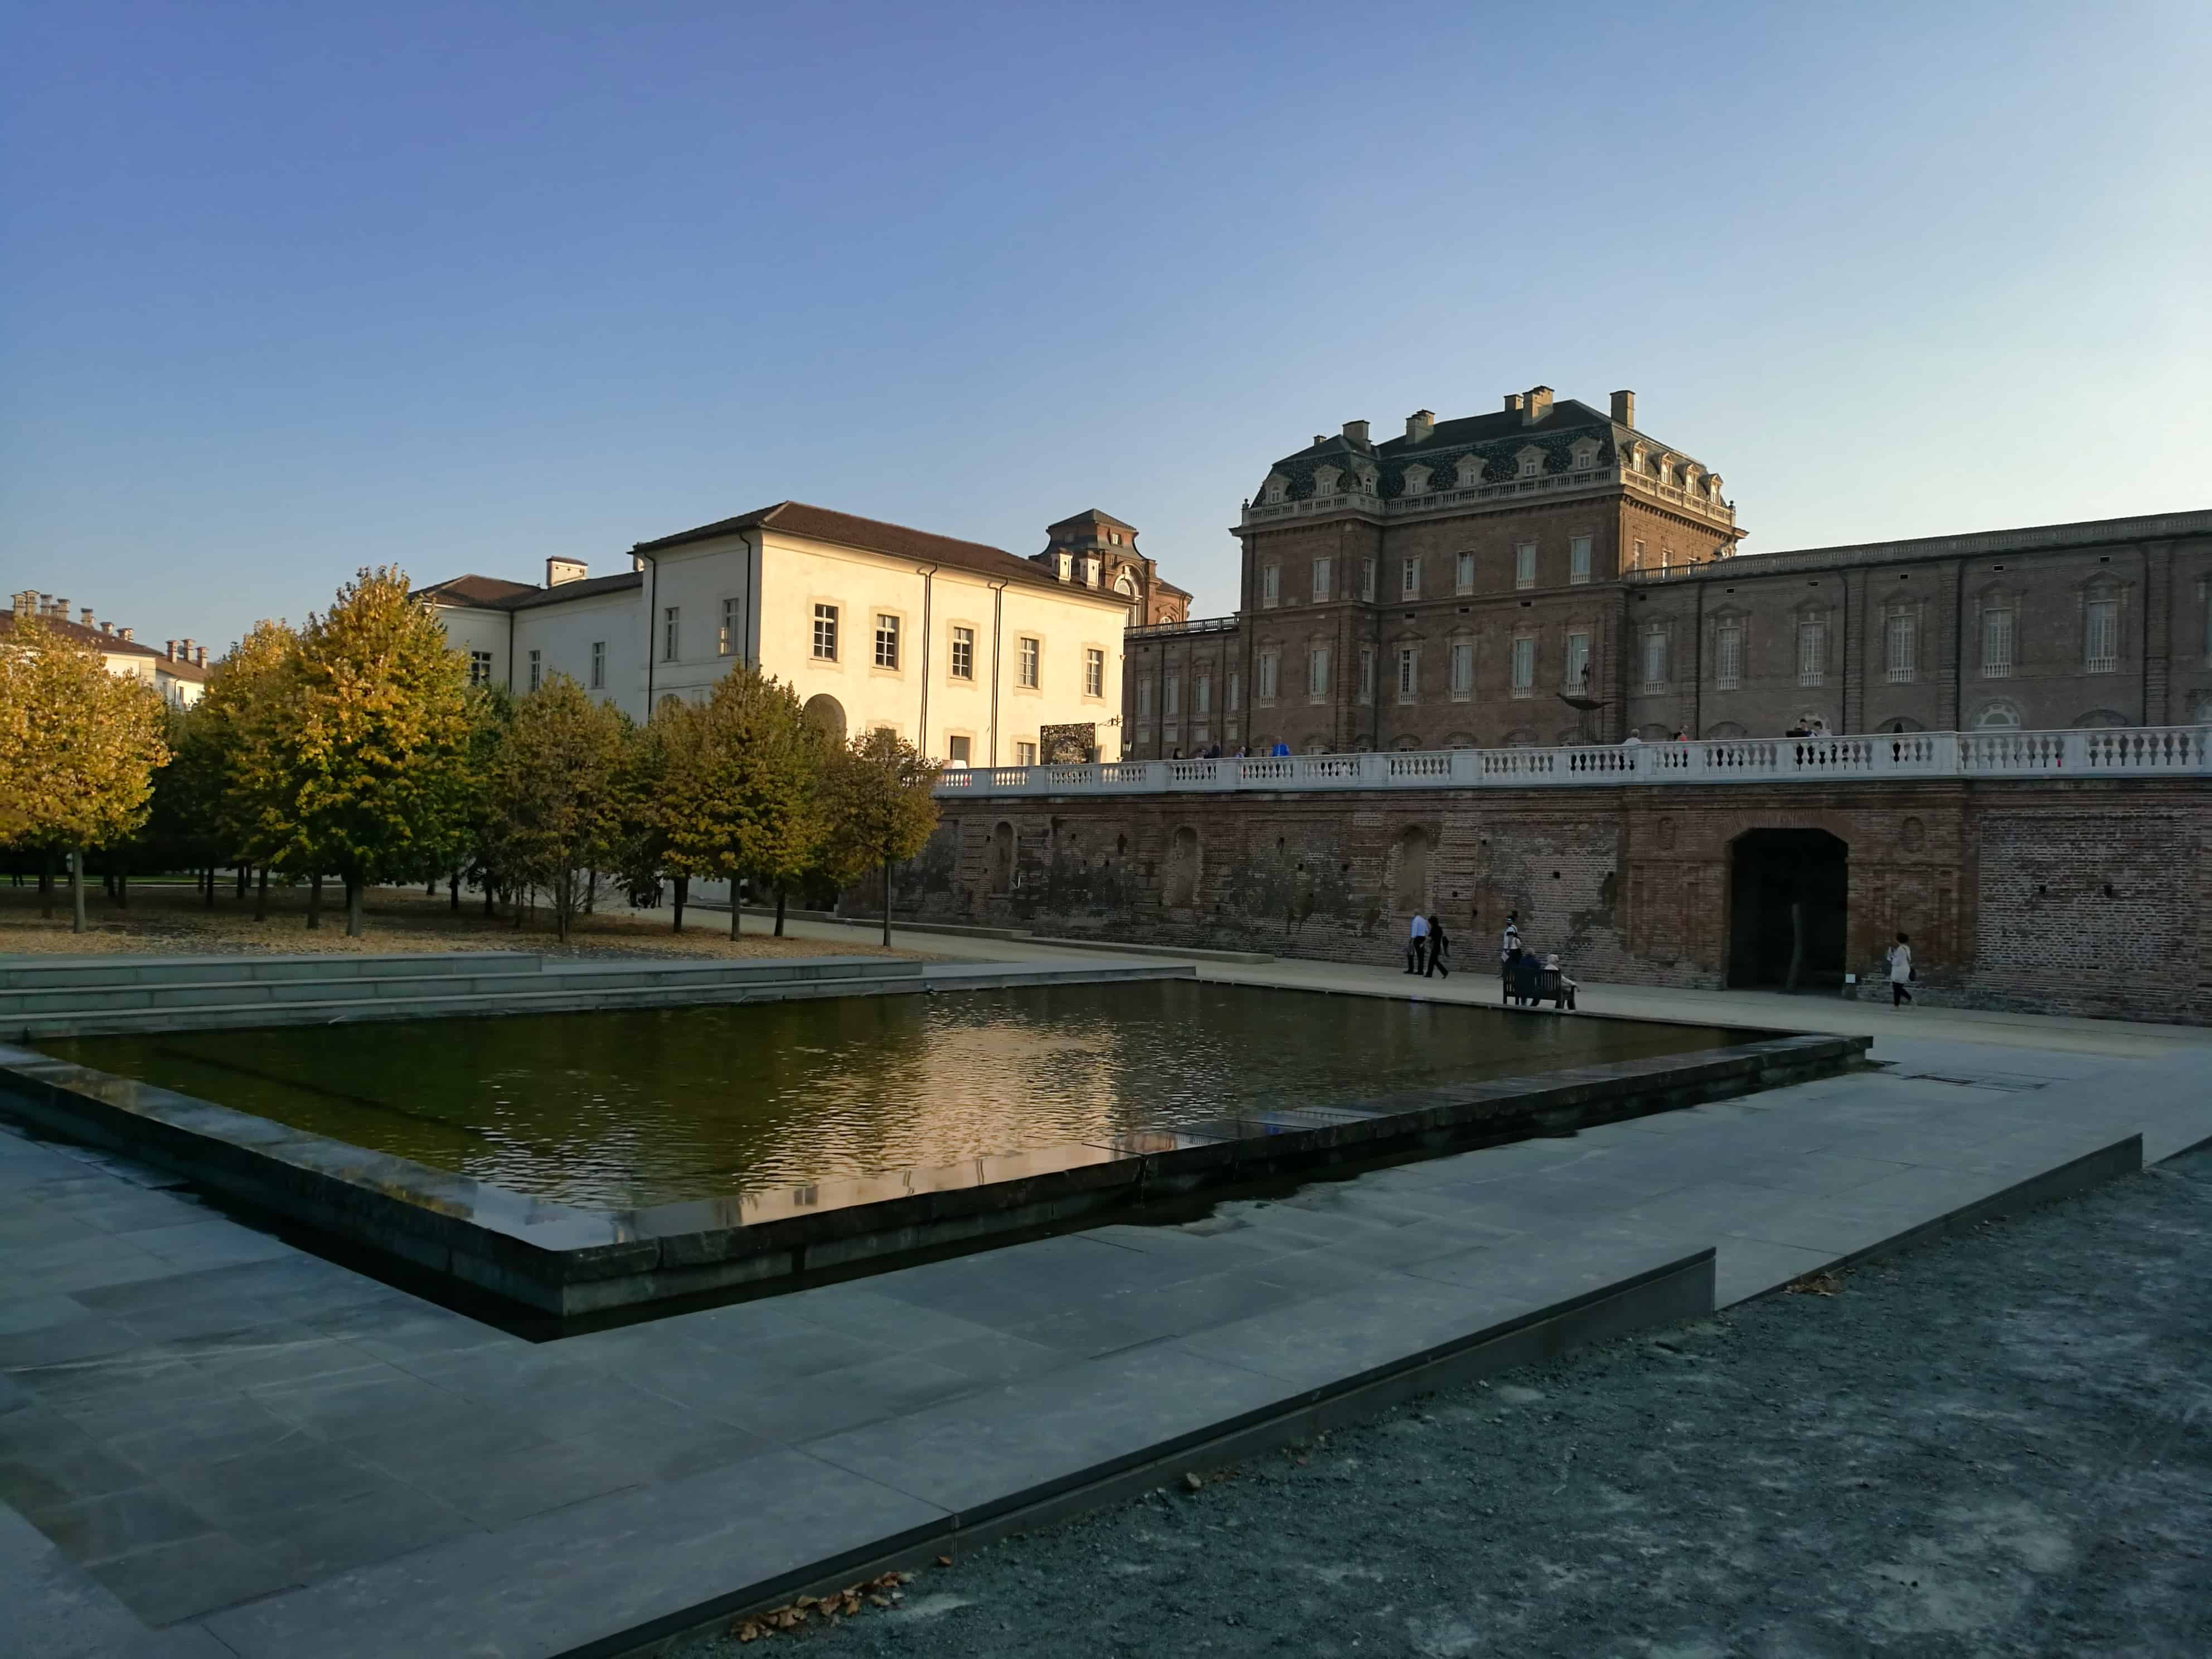 Exterior, Lake, Fountain, Architecture, Museum, Water, Palace, Fortress, Castle, City